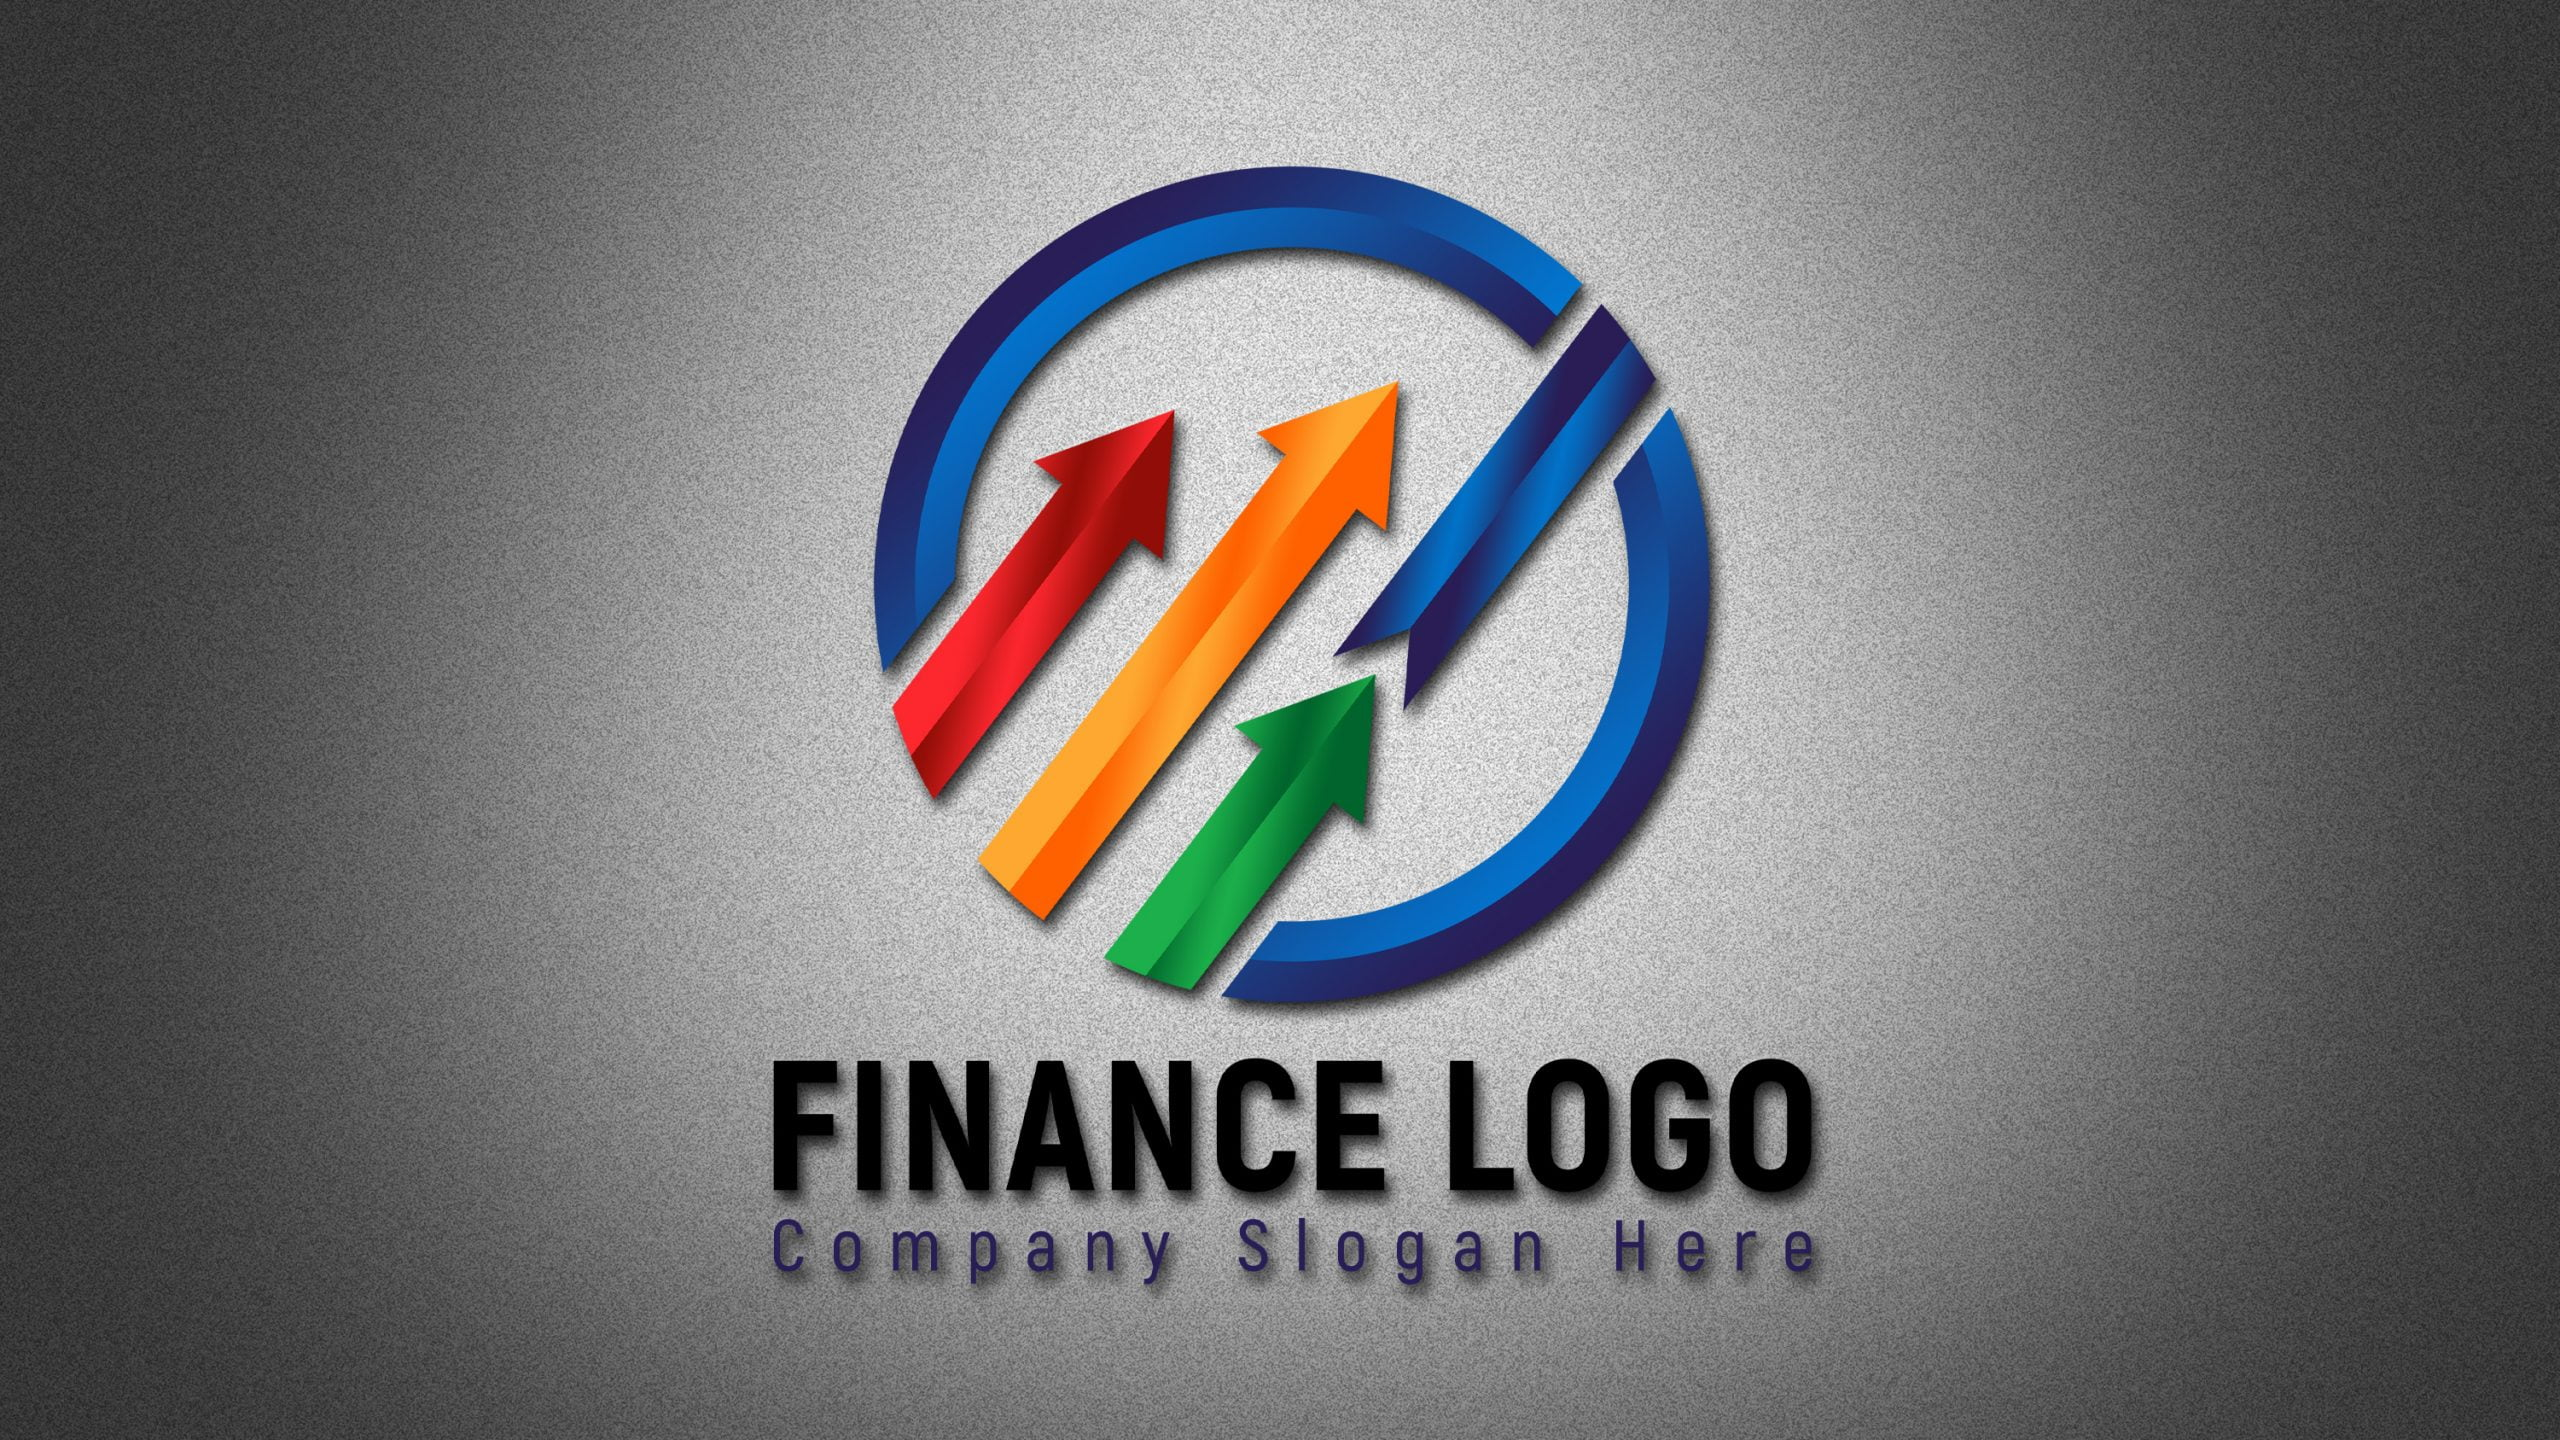 How to Make Finance Company Logo in Photoshop